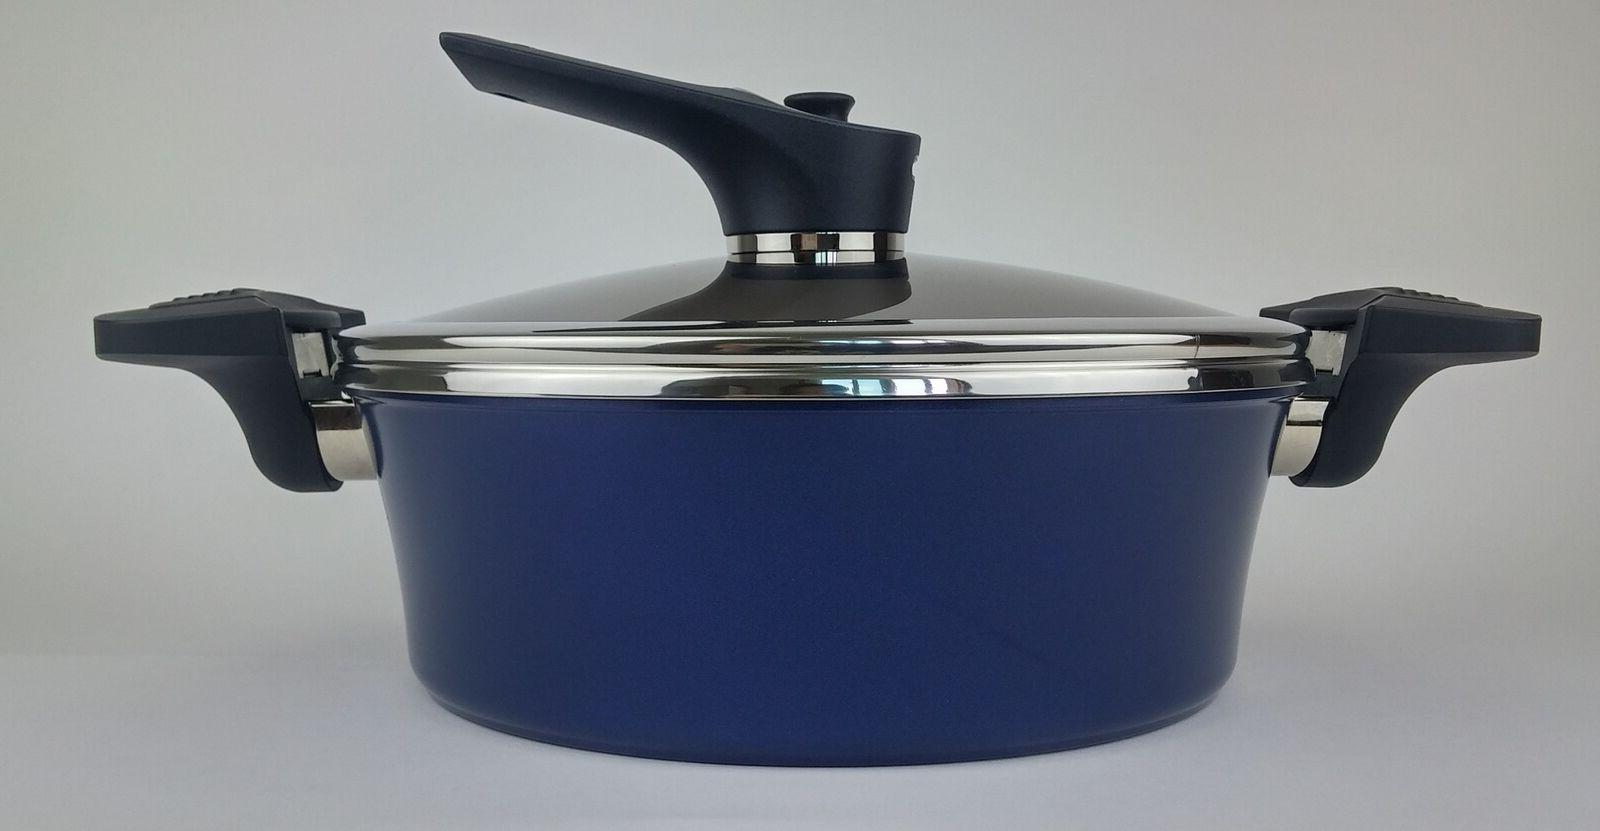 Kinetic Classicor Stainless Steel 8 Quart Covered Stock Pot,